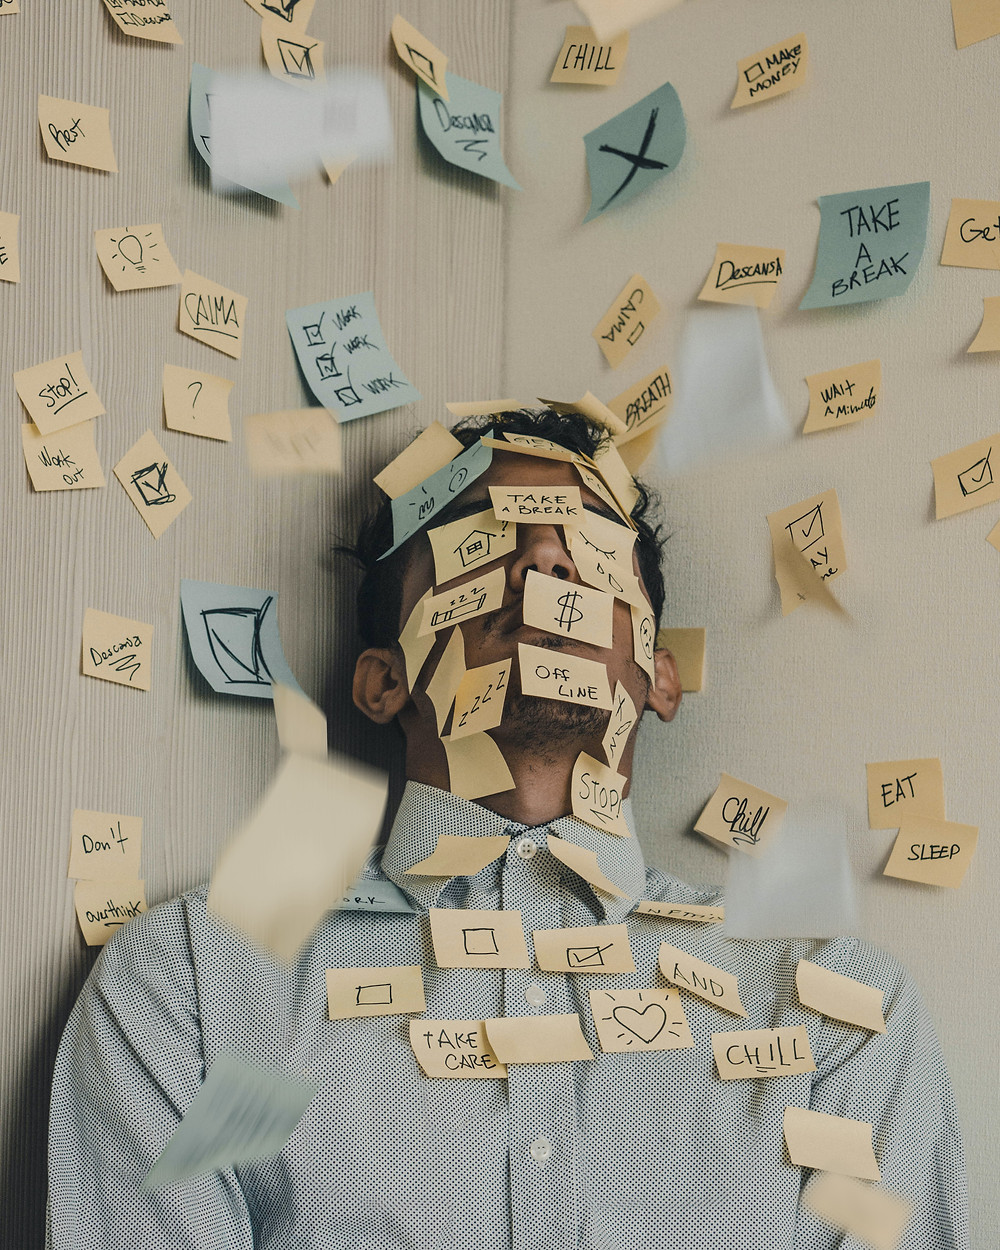 Many covered in sticky notes